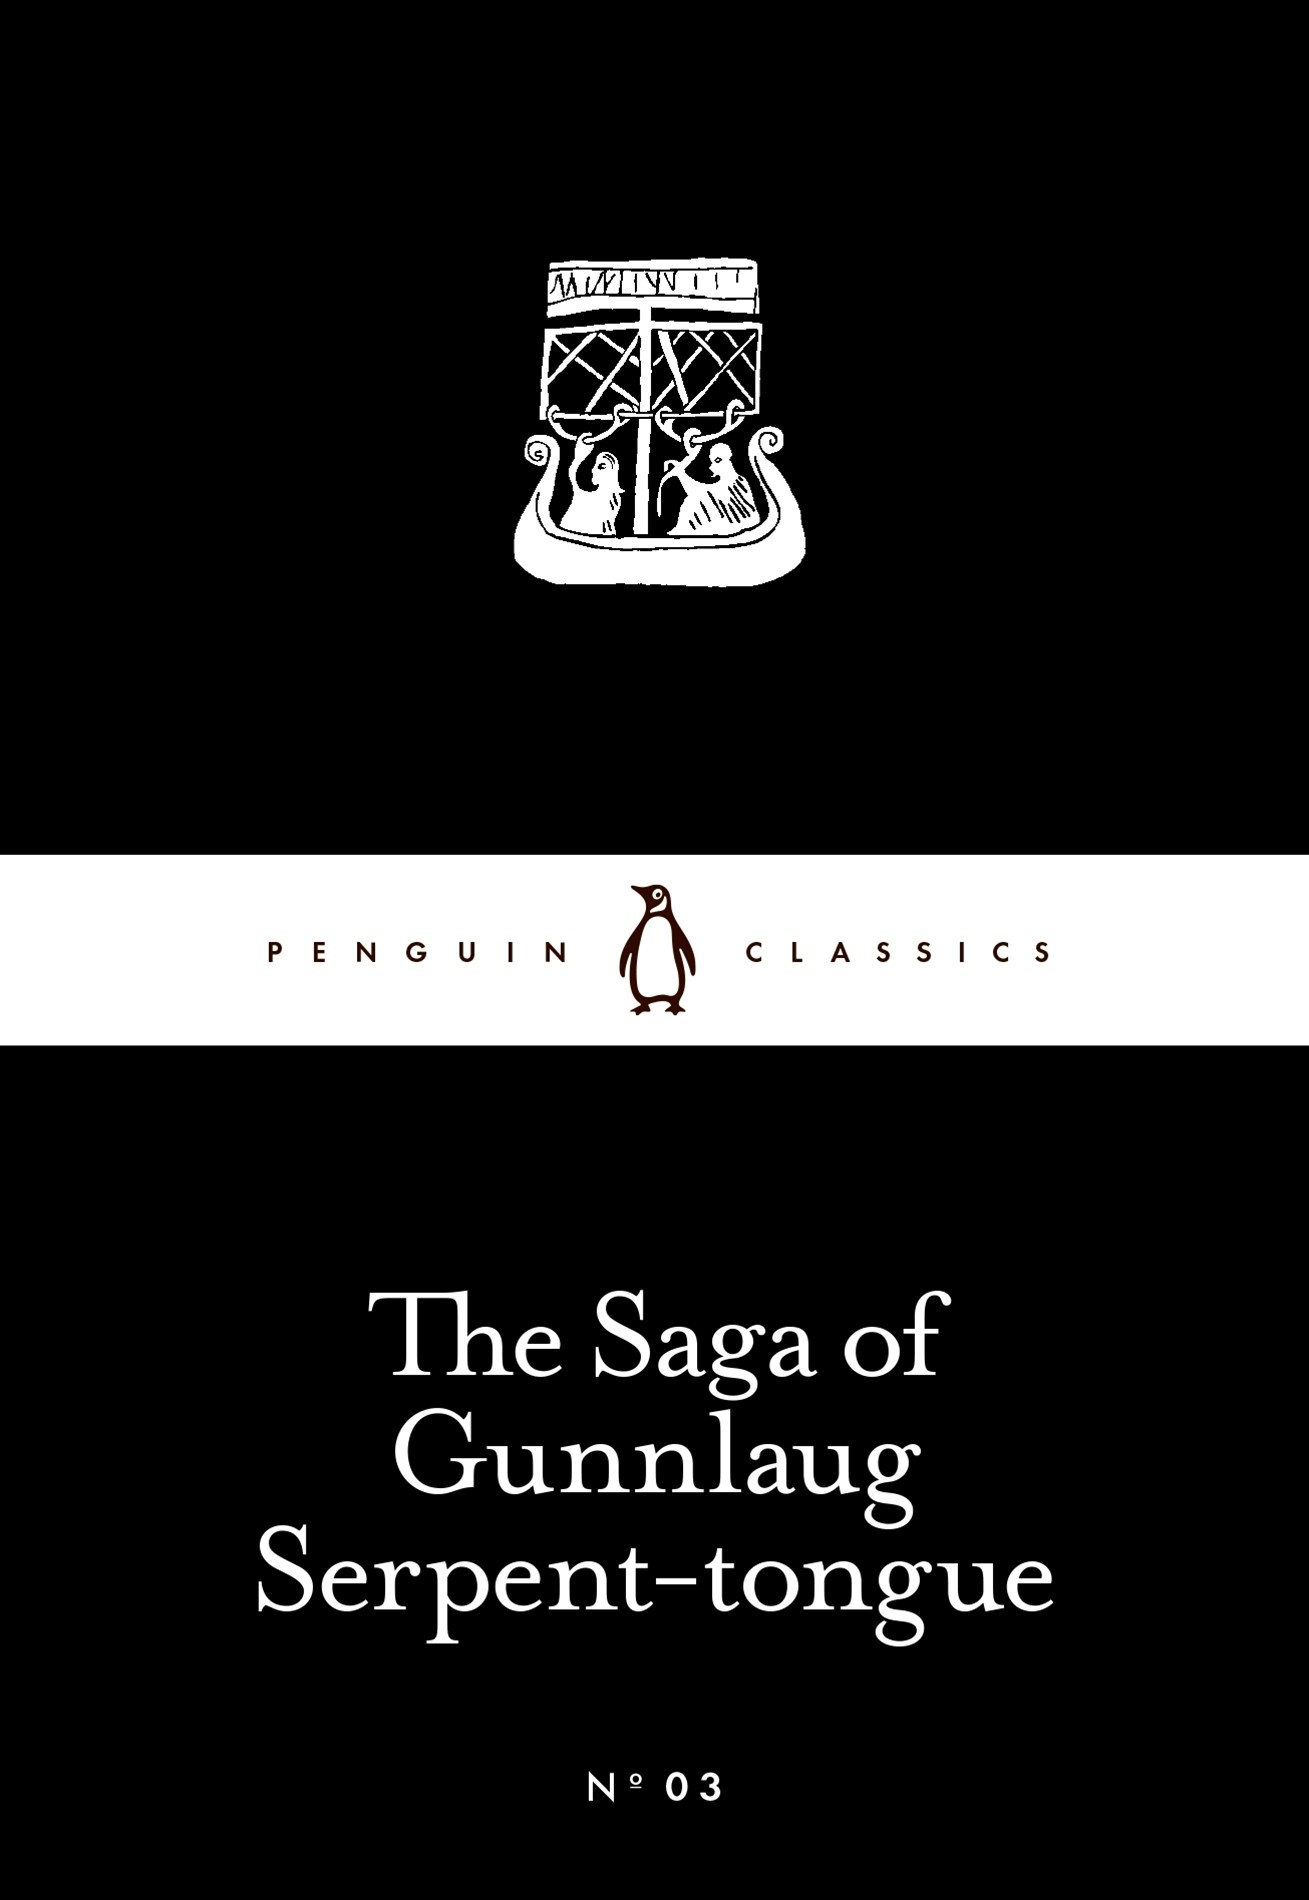 The Saga Of Gunnlaug Serpent-Tongue, Theuin 80S